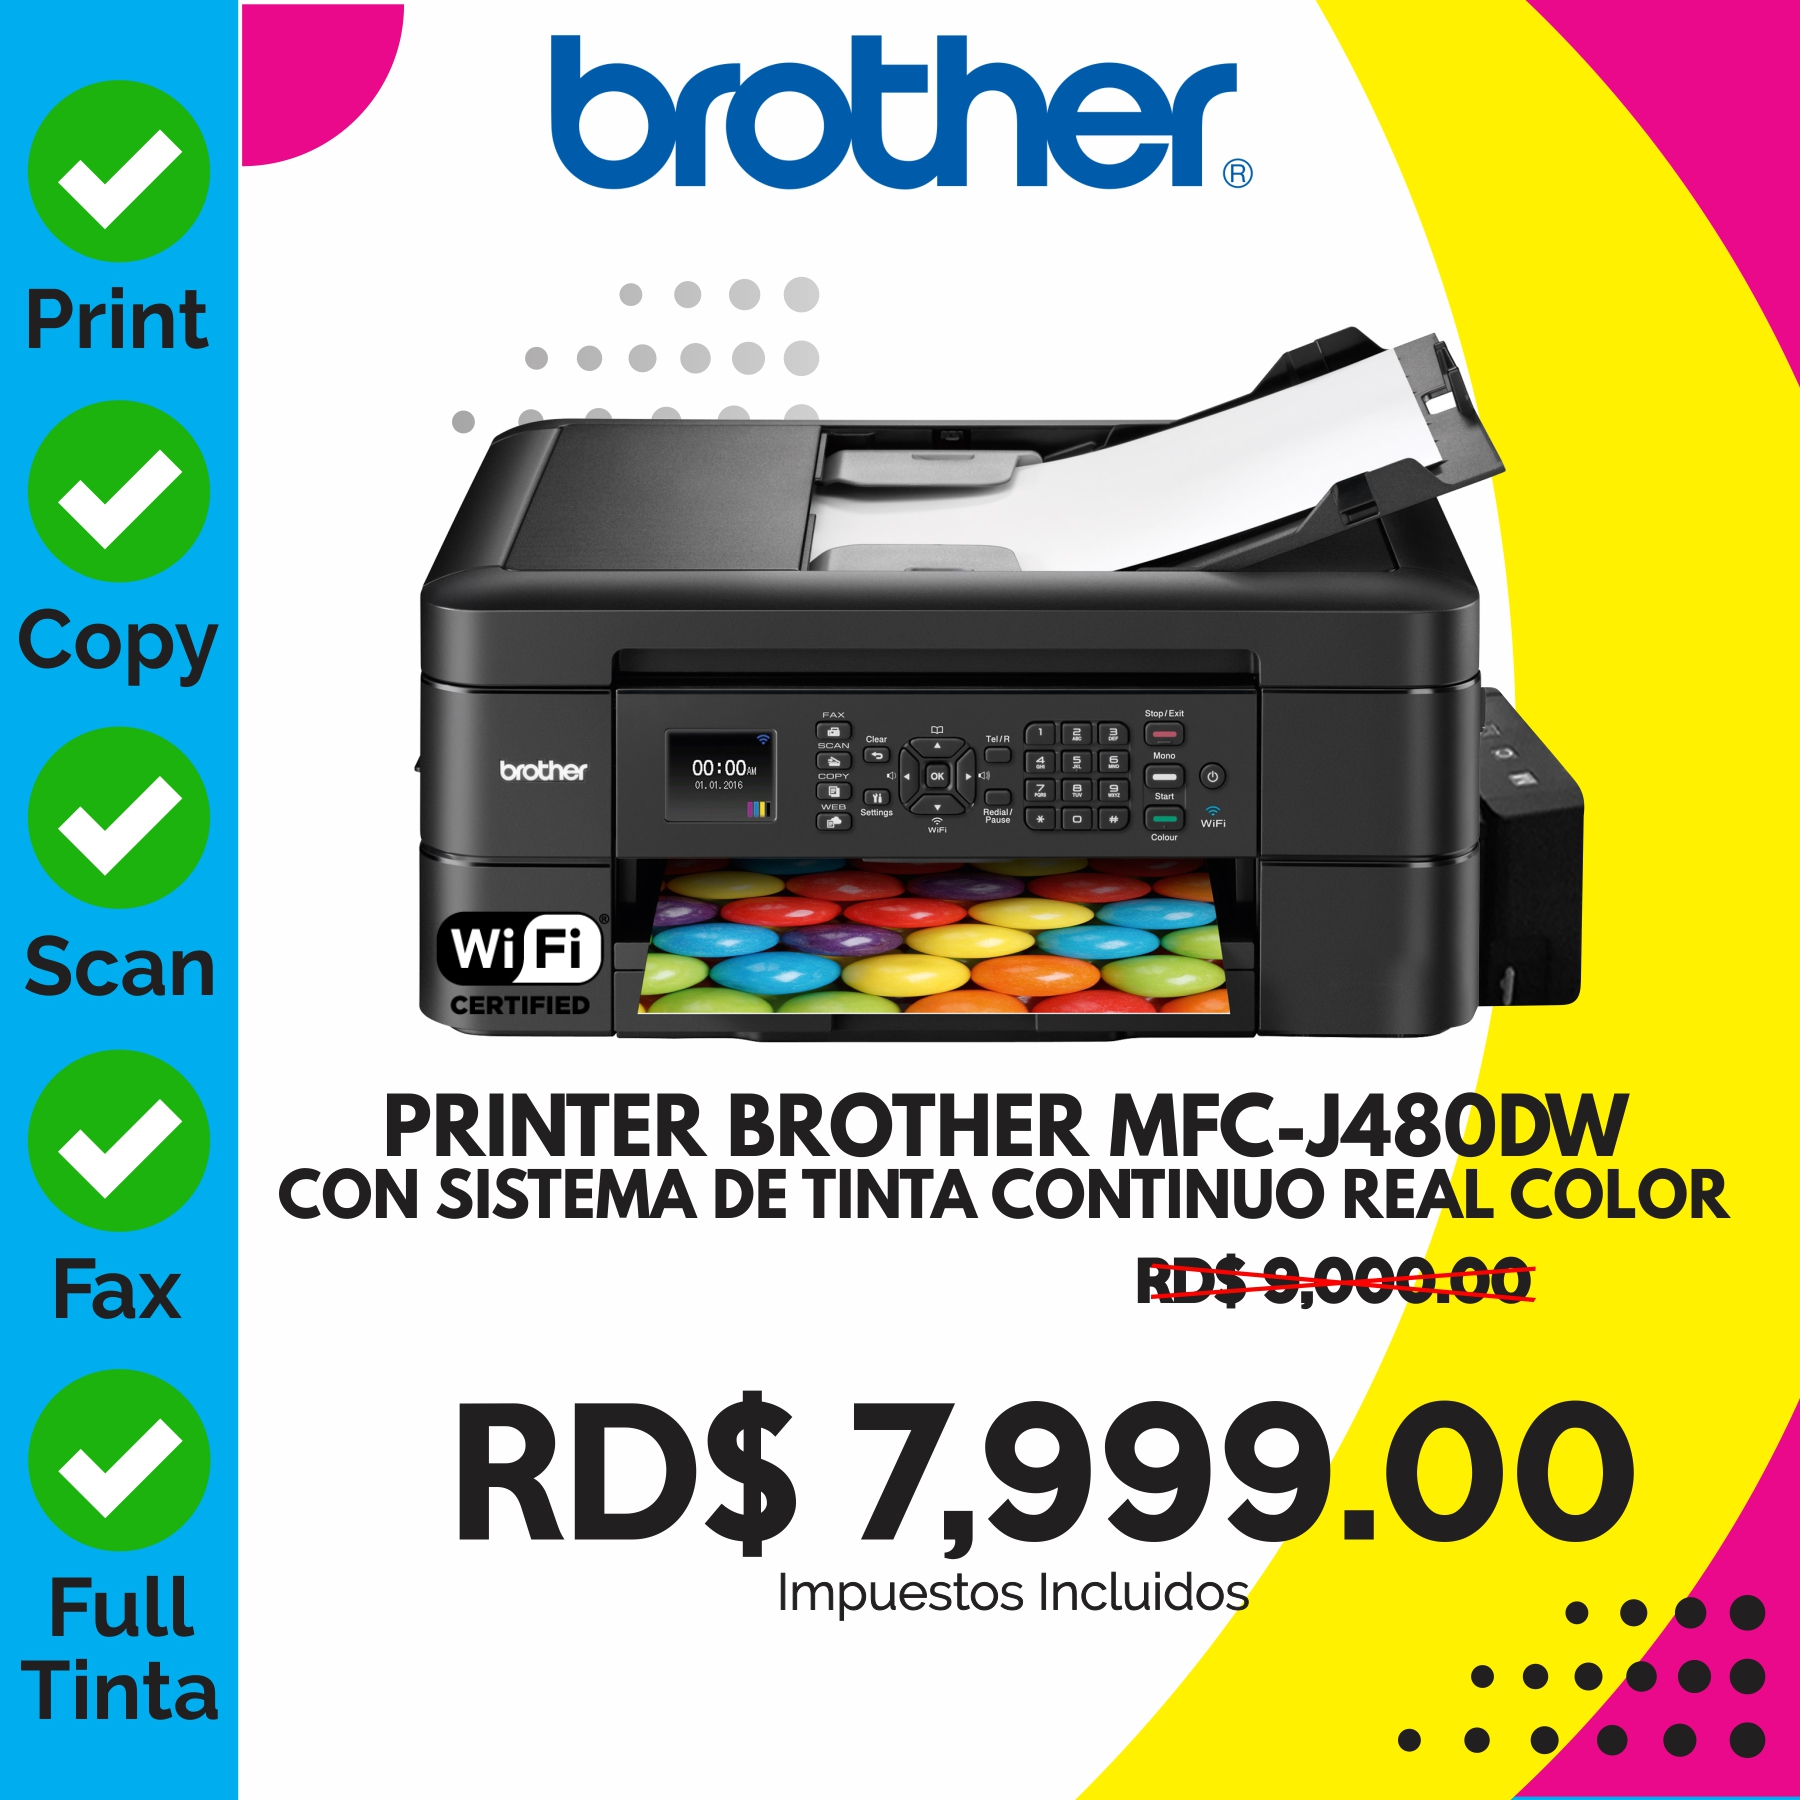 PRINTER BROTHER MFC-J480DW + SISTEMA TINTA